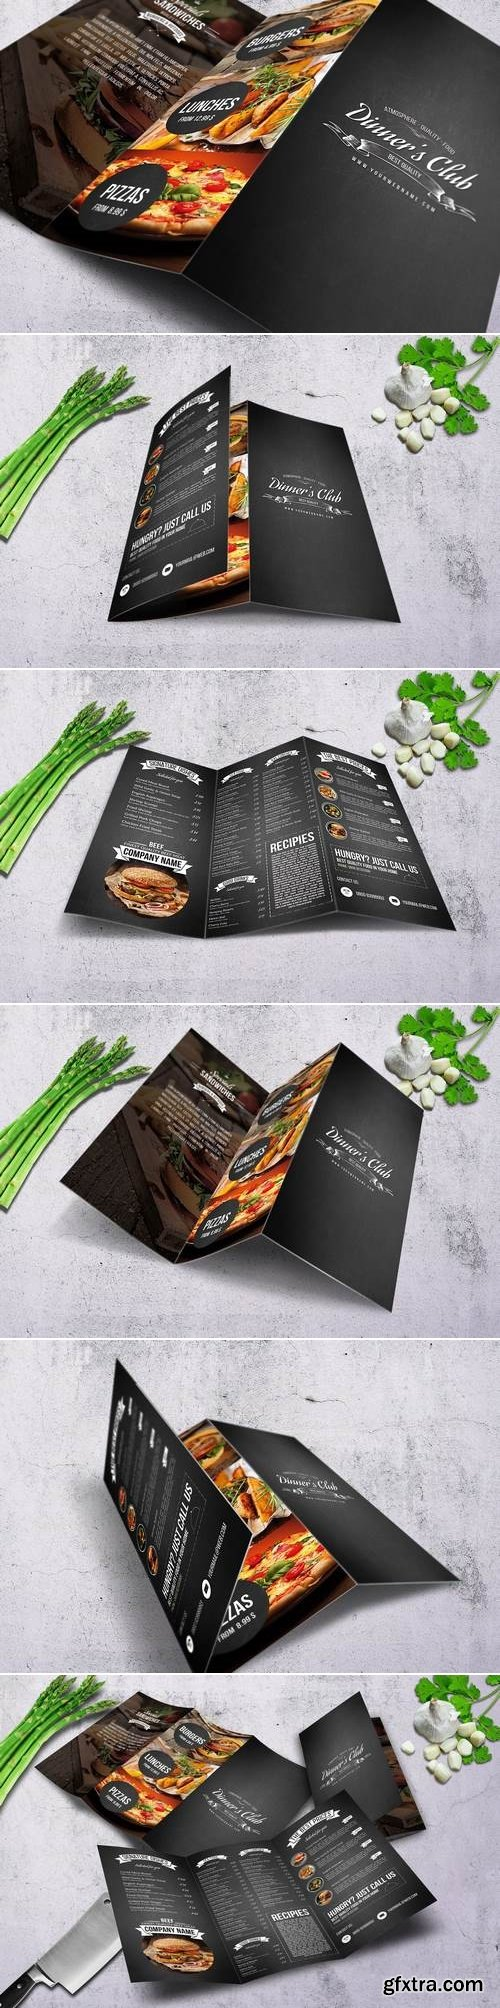 Diner\'s Club A4 Trfiold Menu Design